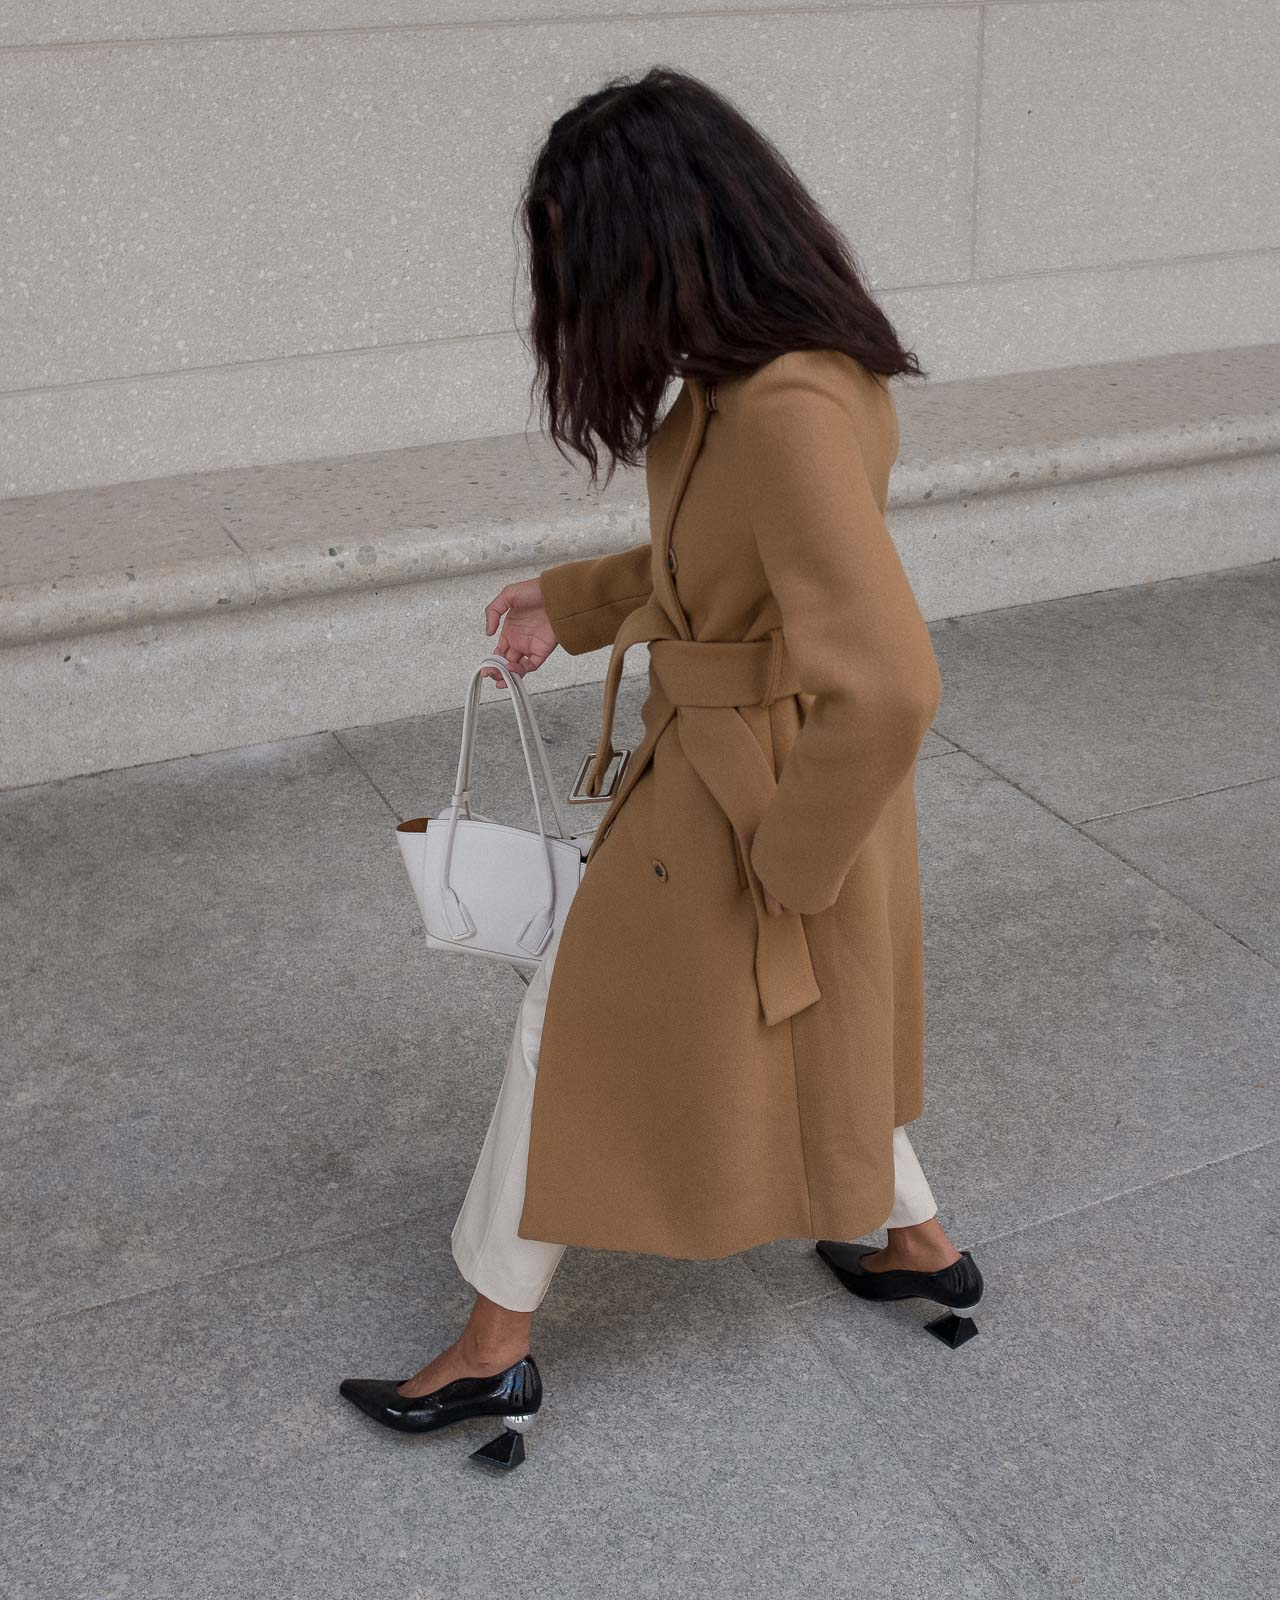 storm wears black mules from yuul yie combined with by malene birger camel coat and white arco bottega veneta bag